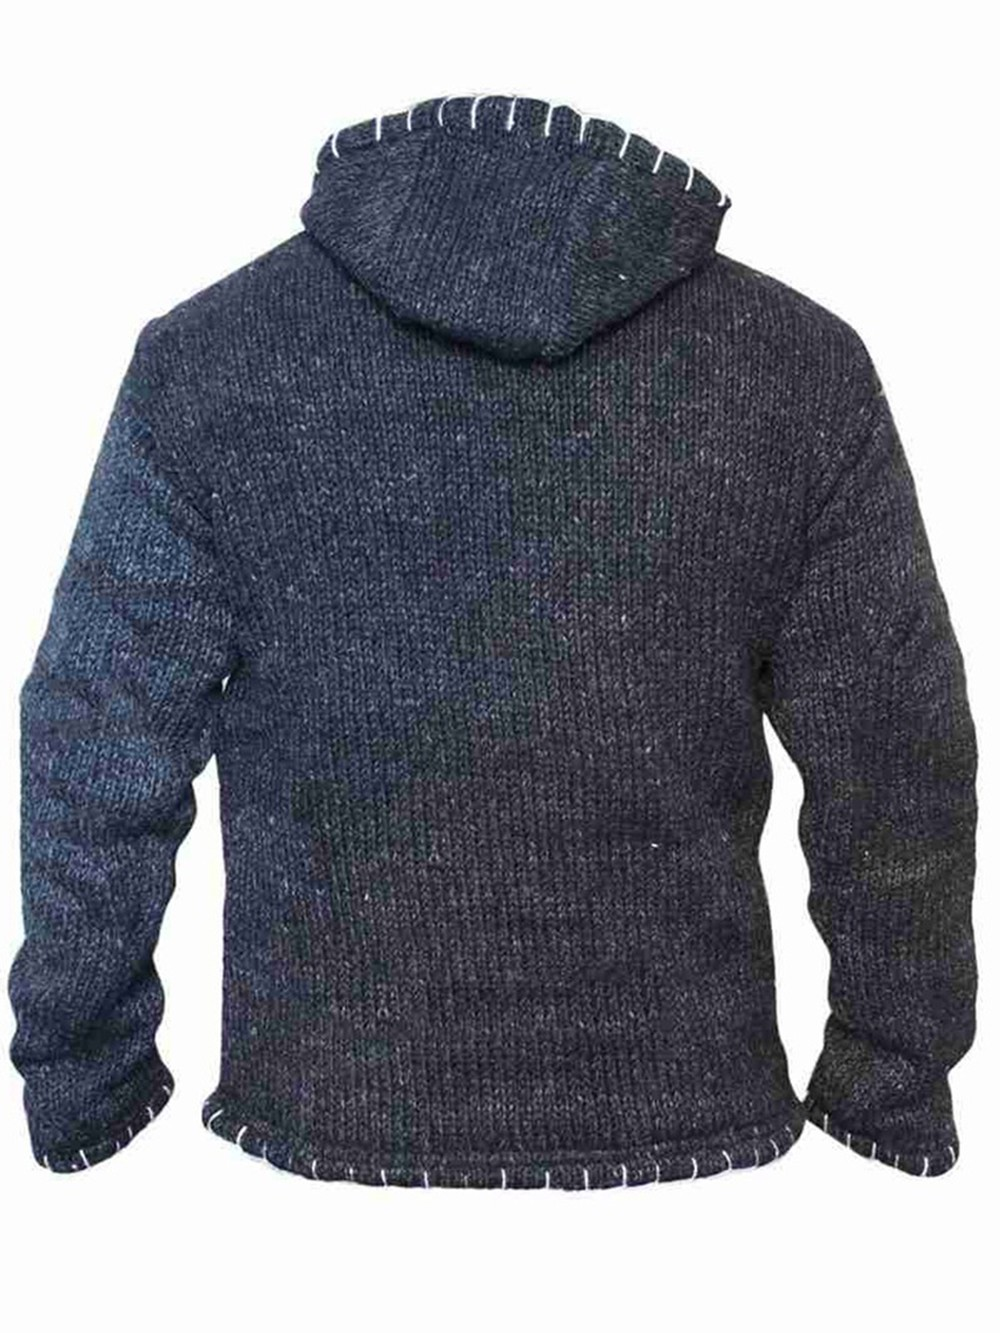 Long Sleeve Hooded Large Size Men's Stitching Sweater - Green 4XL